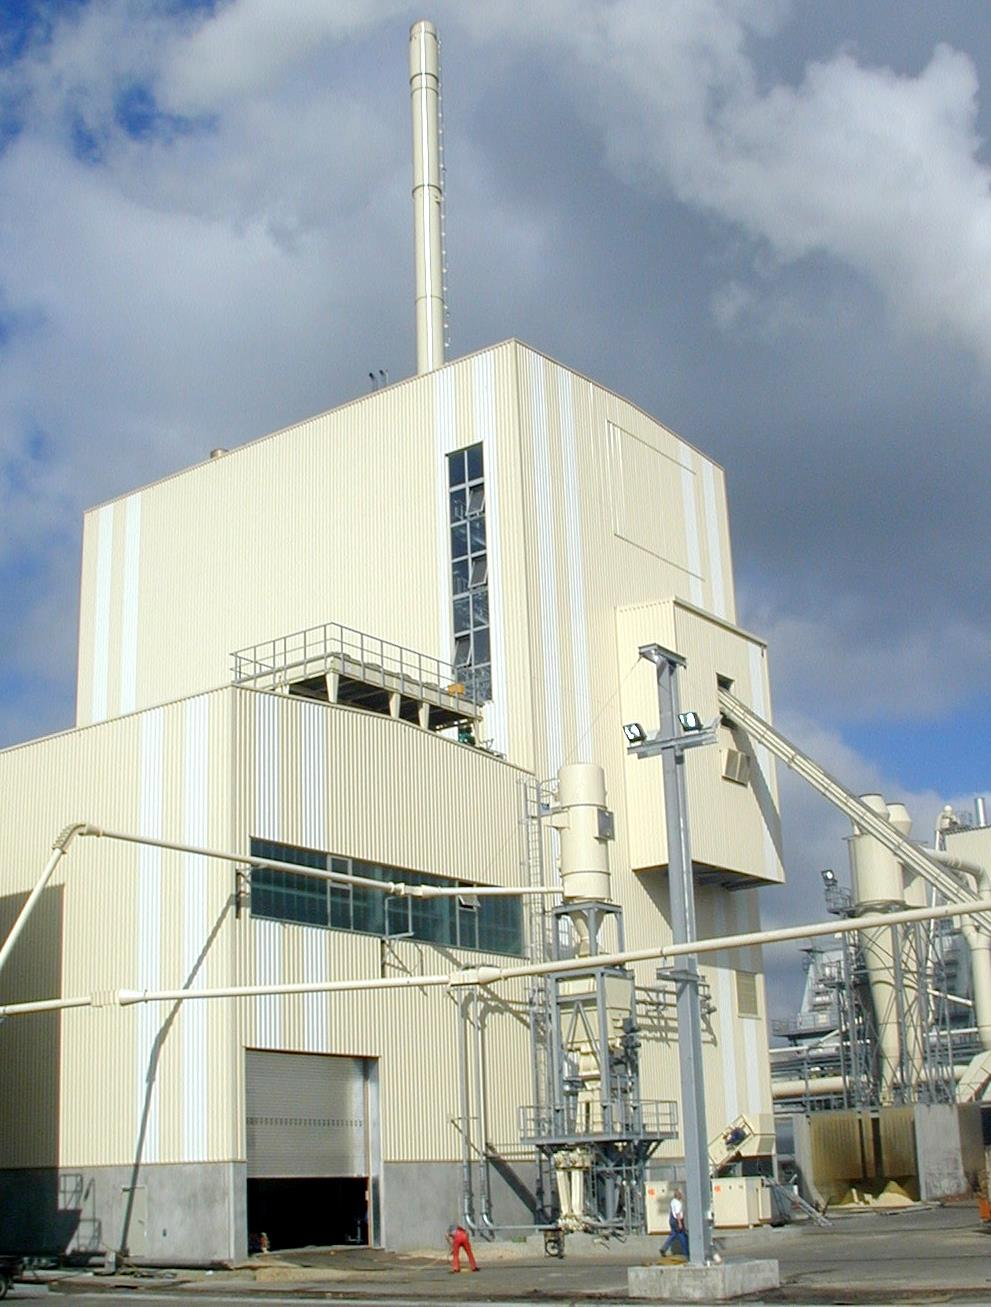 The Kronoply CHP plant produces 20MWe and 10 MW thermal heating.